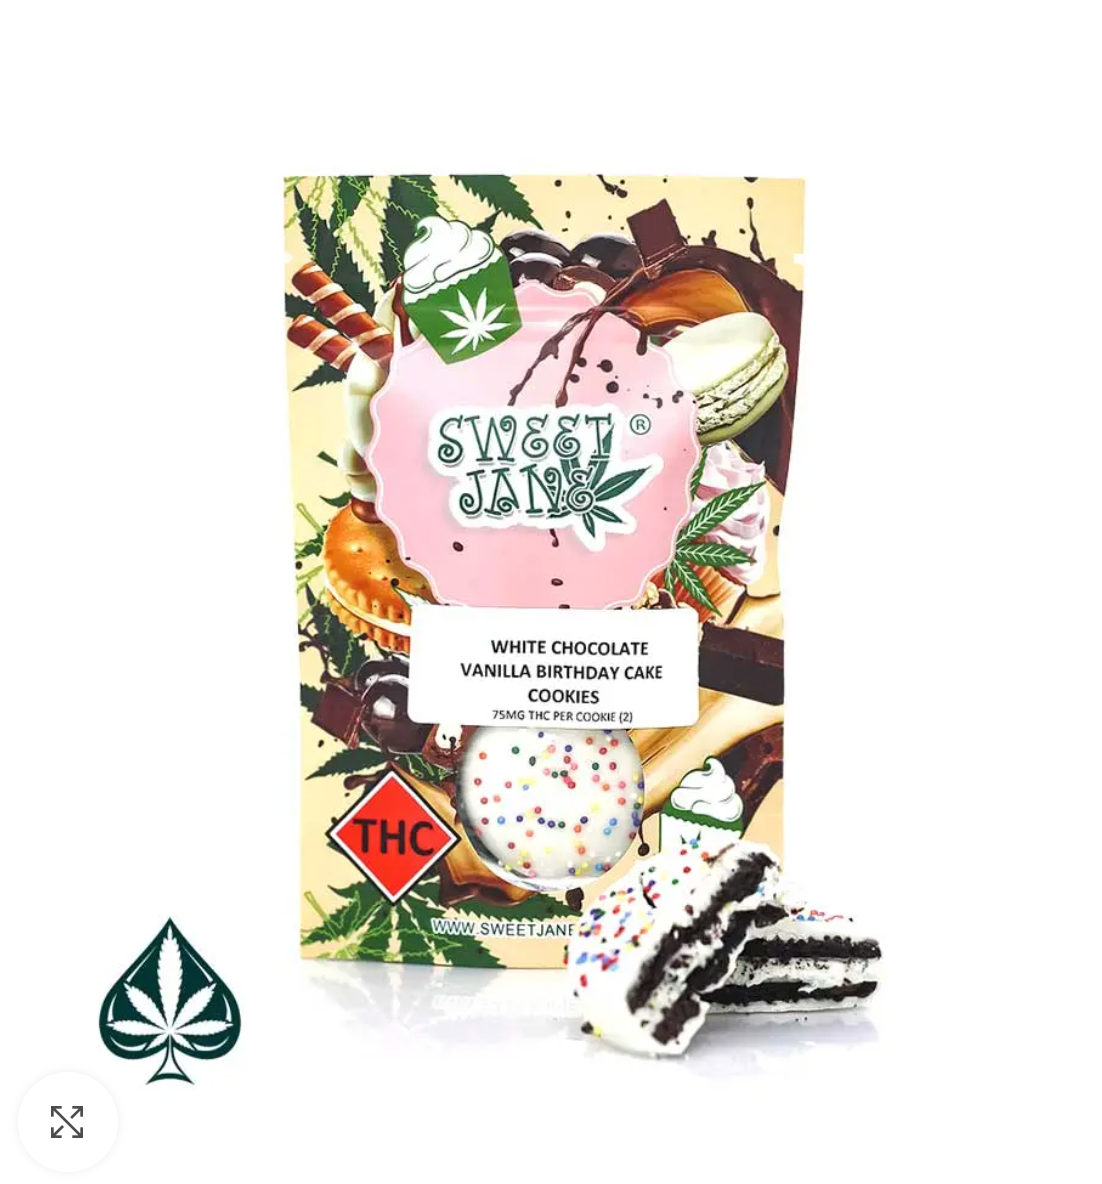 MILK CHOCOLATE VANILLA BIRTHDAY CAKE CREAM COOKIES BY SWEET JANE – 150MG